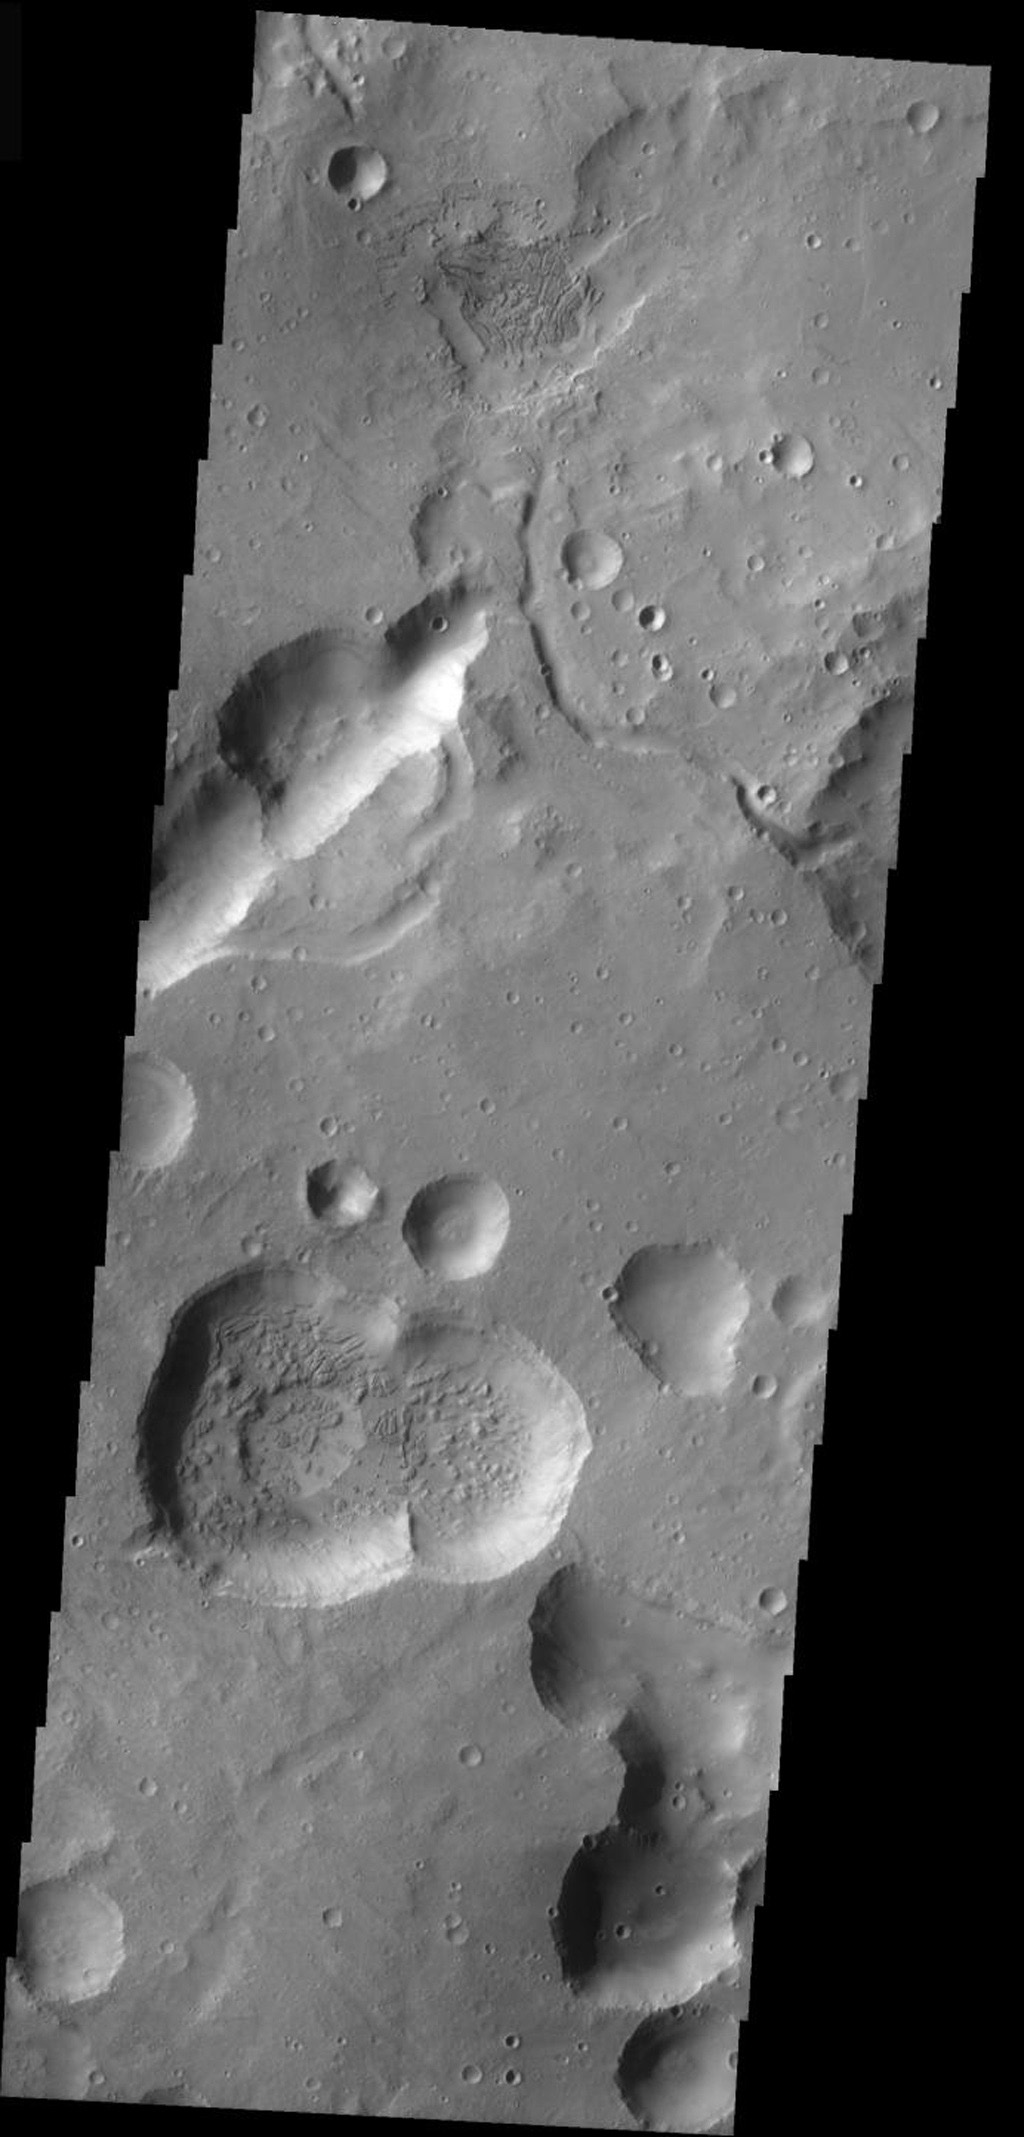 This image from NASA's Mars Odyssey is from the Cydonia region of Mars. It illustrates how difficult it can be to identify modified impact craters in a region of collapse pits/craters. Generally collapse craters/pits have no rims and form lines.